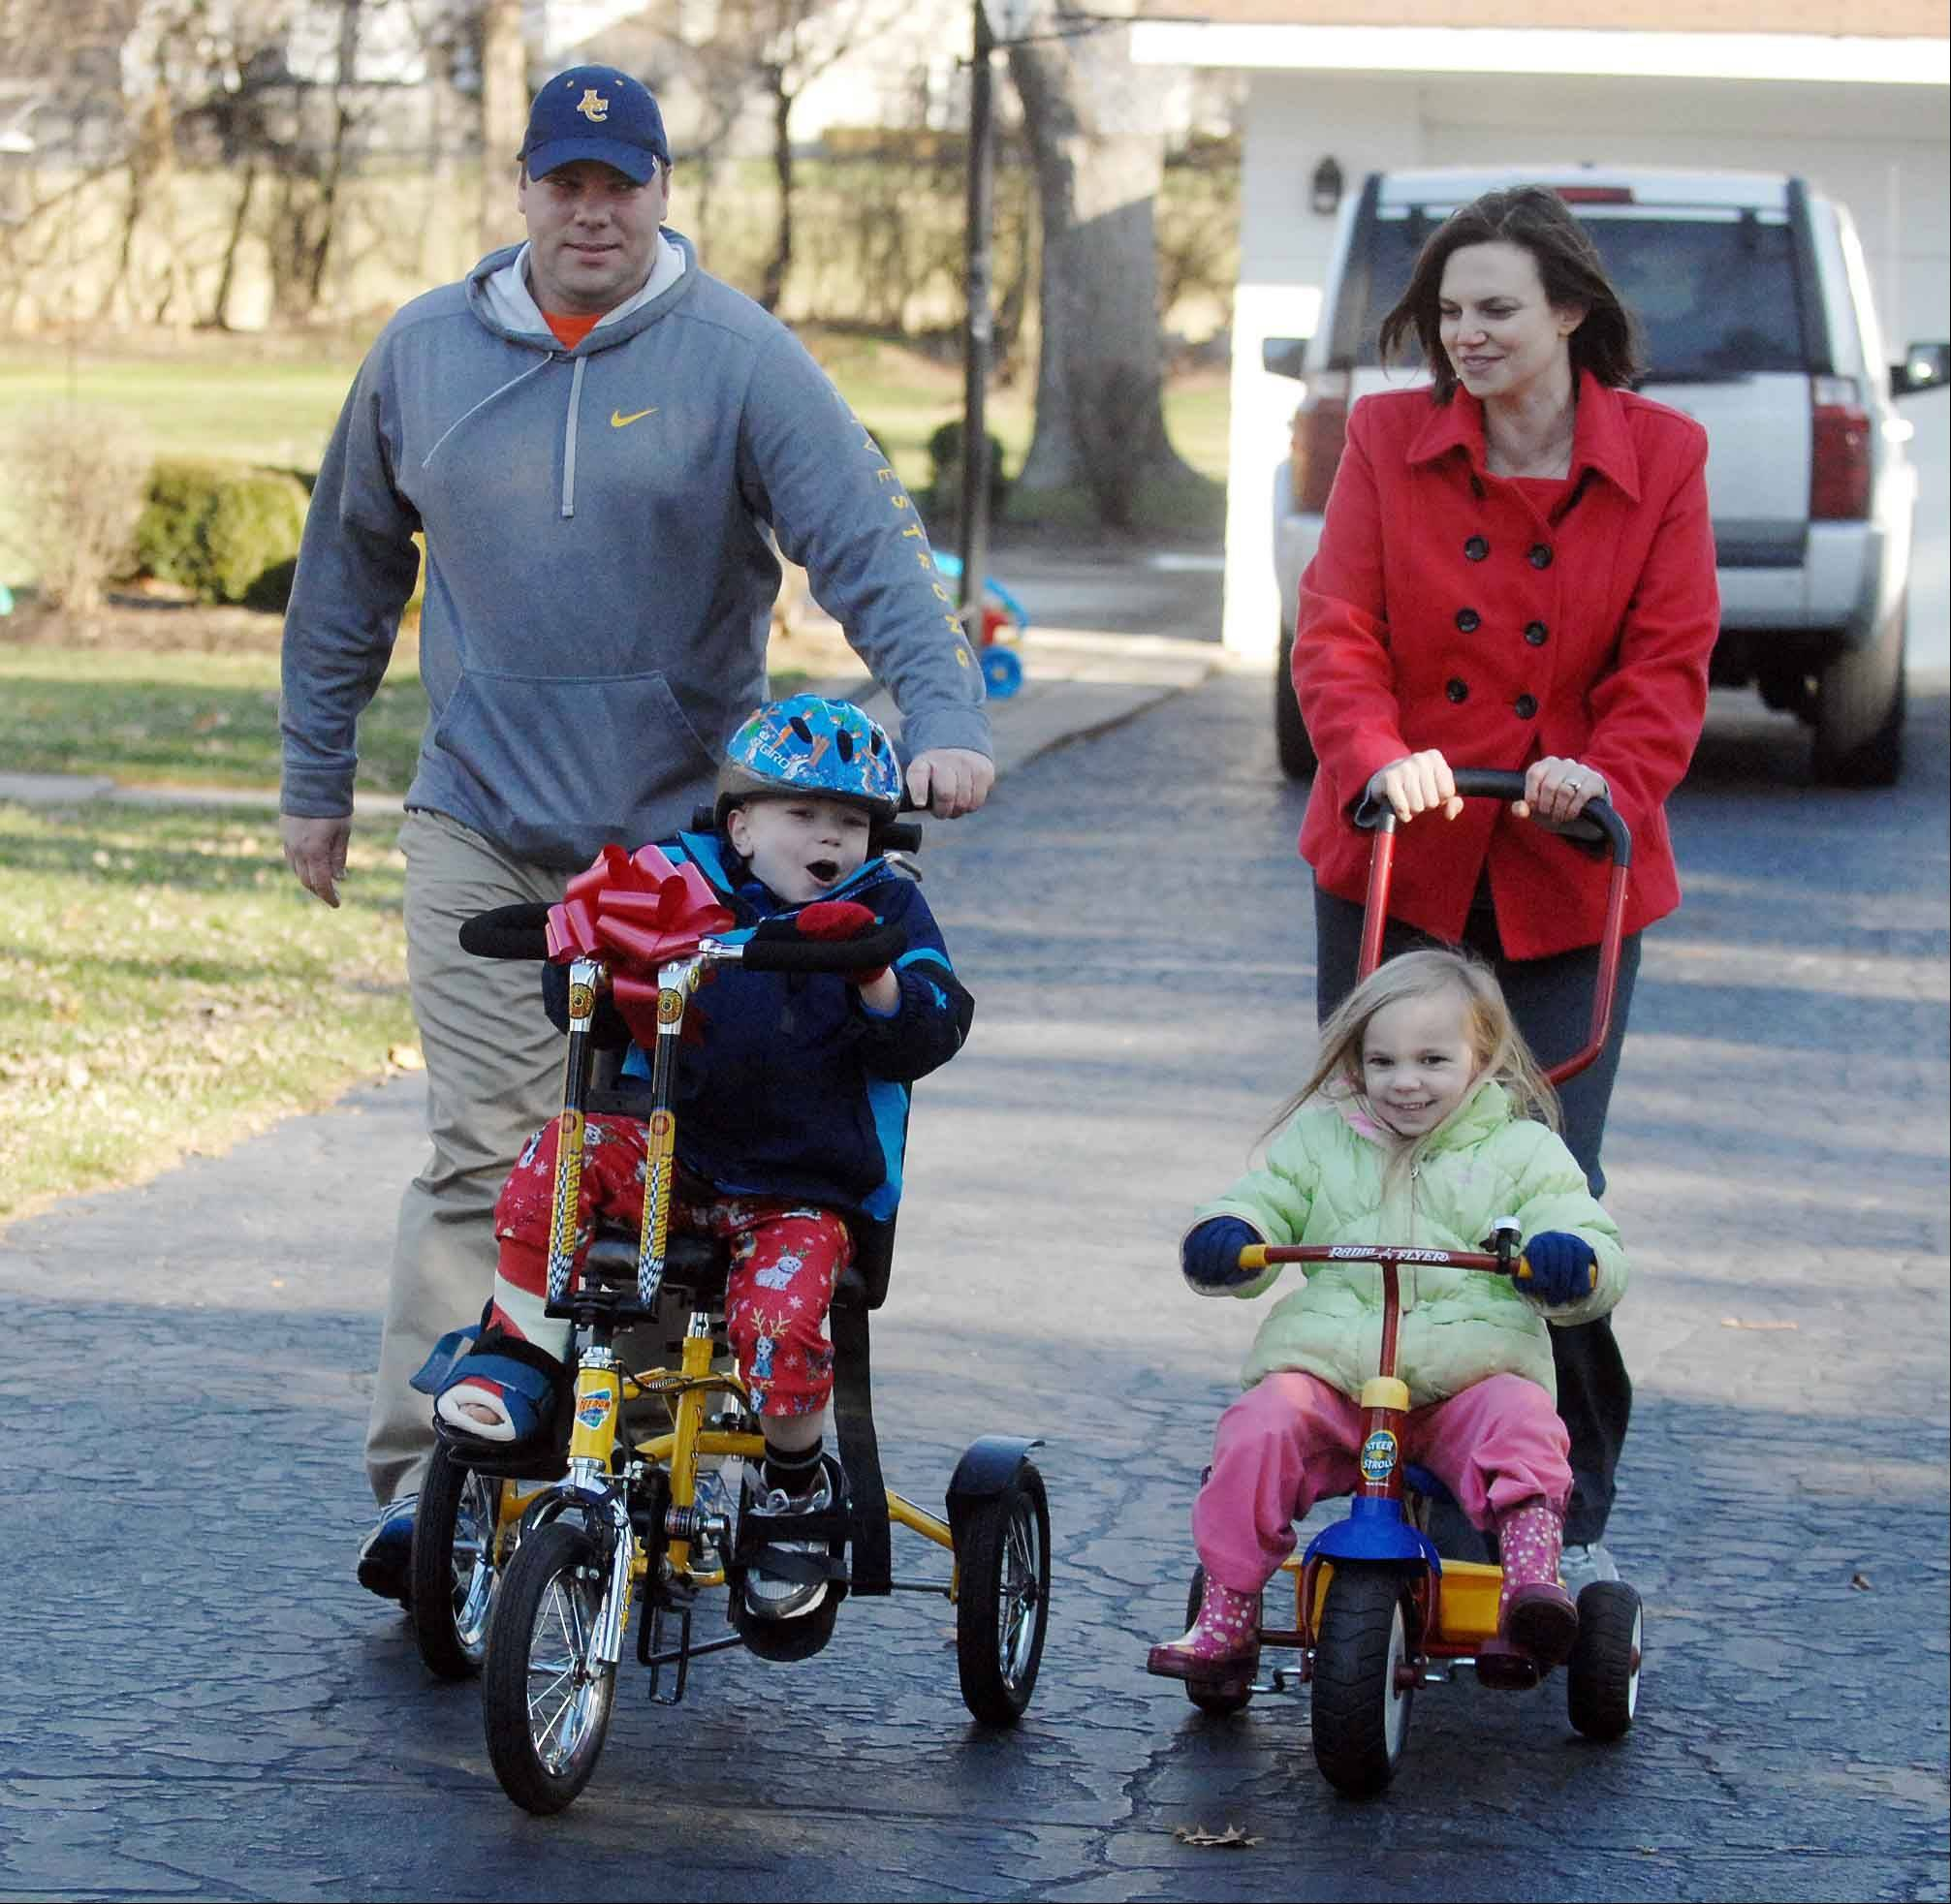 The family of 6-year-old Owen Payton, shown here in 2011 riding a therapeutic bike, is trying to raise $60,000 for expenses related to a heart transplant Owen is waiting to receive.